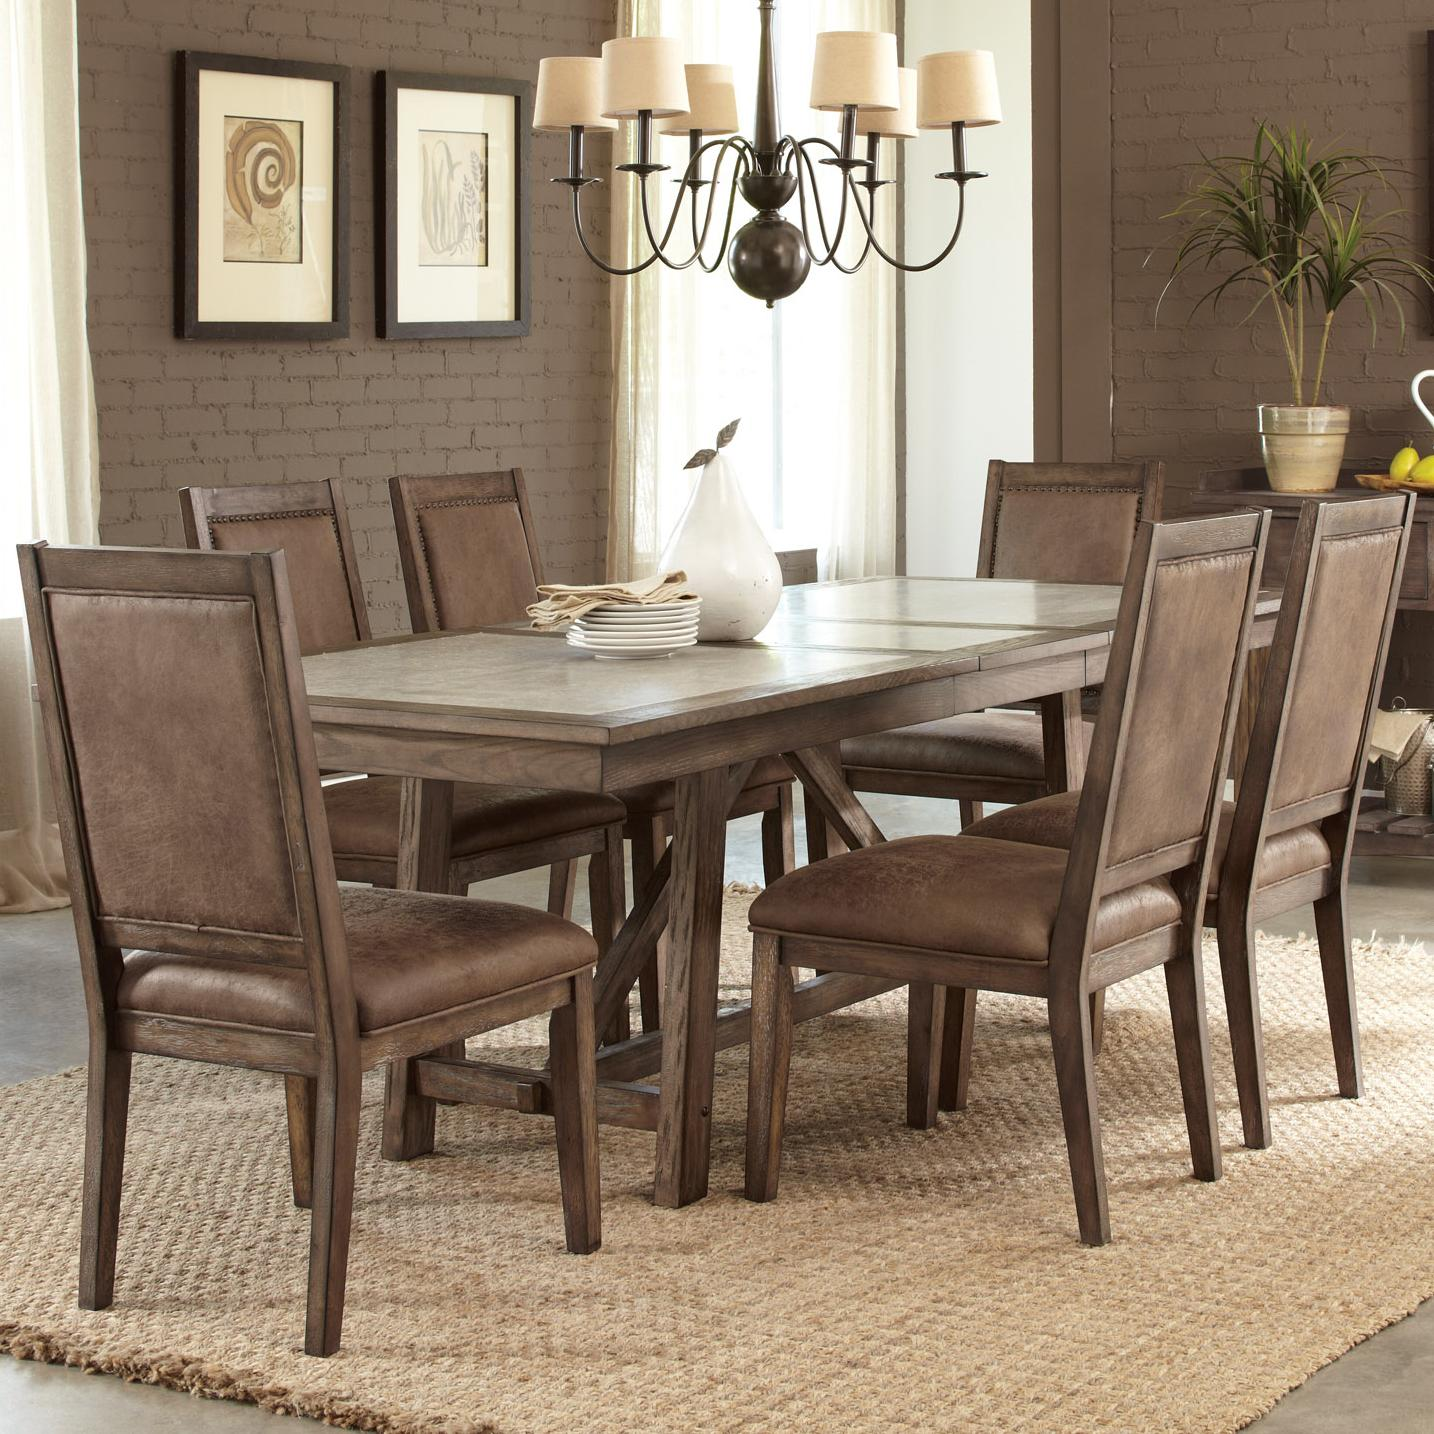 Liberty Furniture Stone Brook 466 Dr 7trs Casual 7 Piece